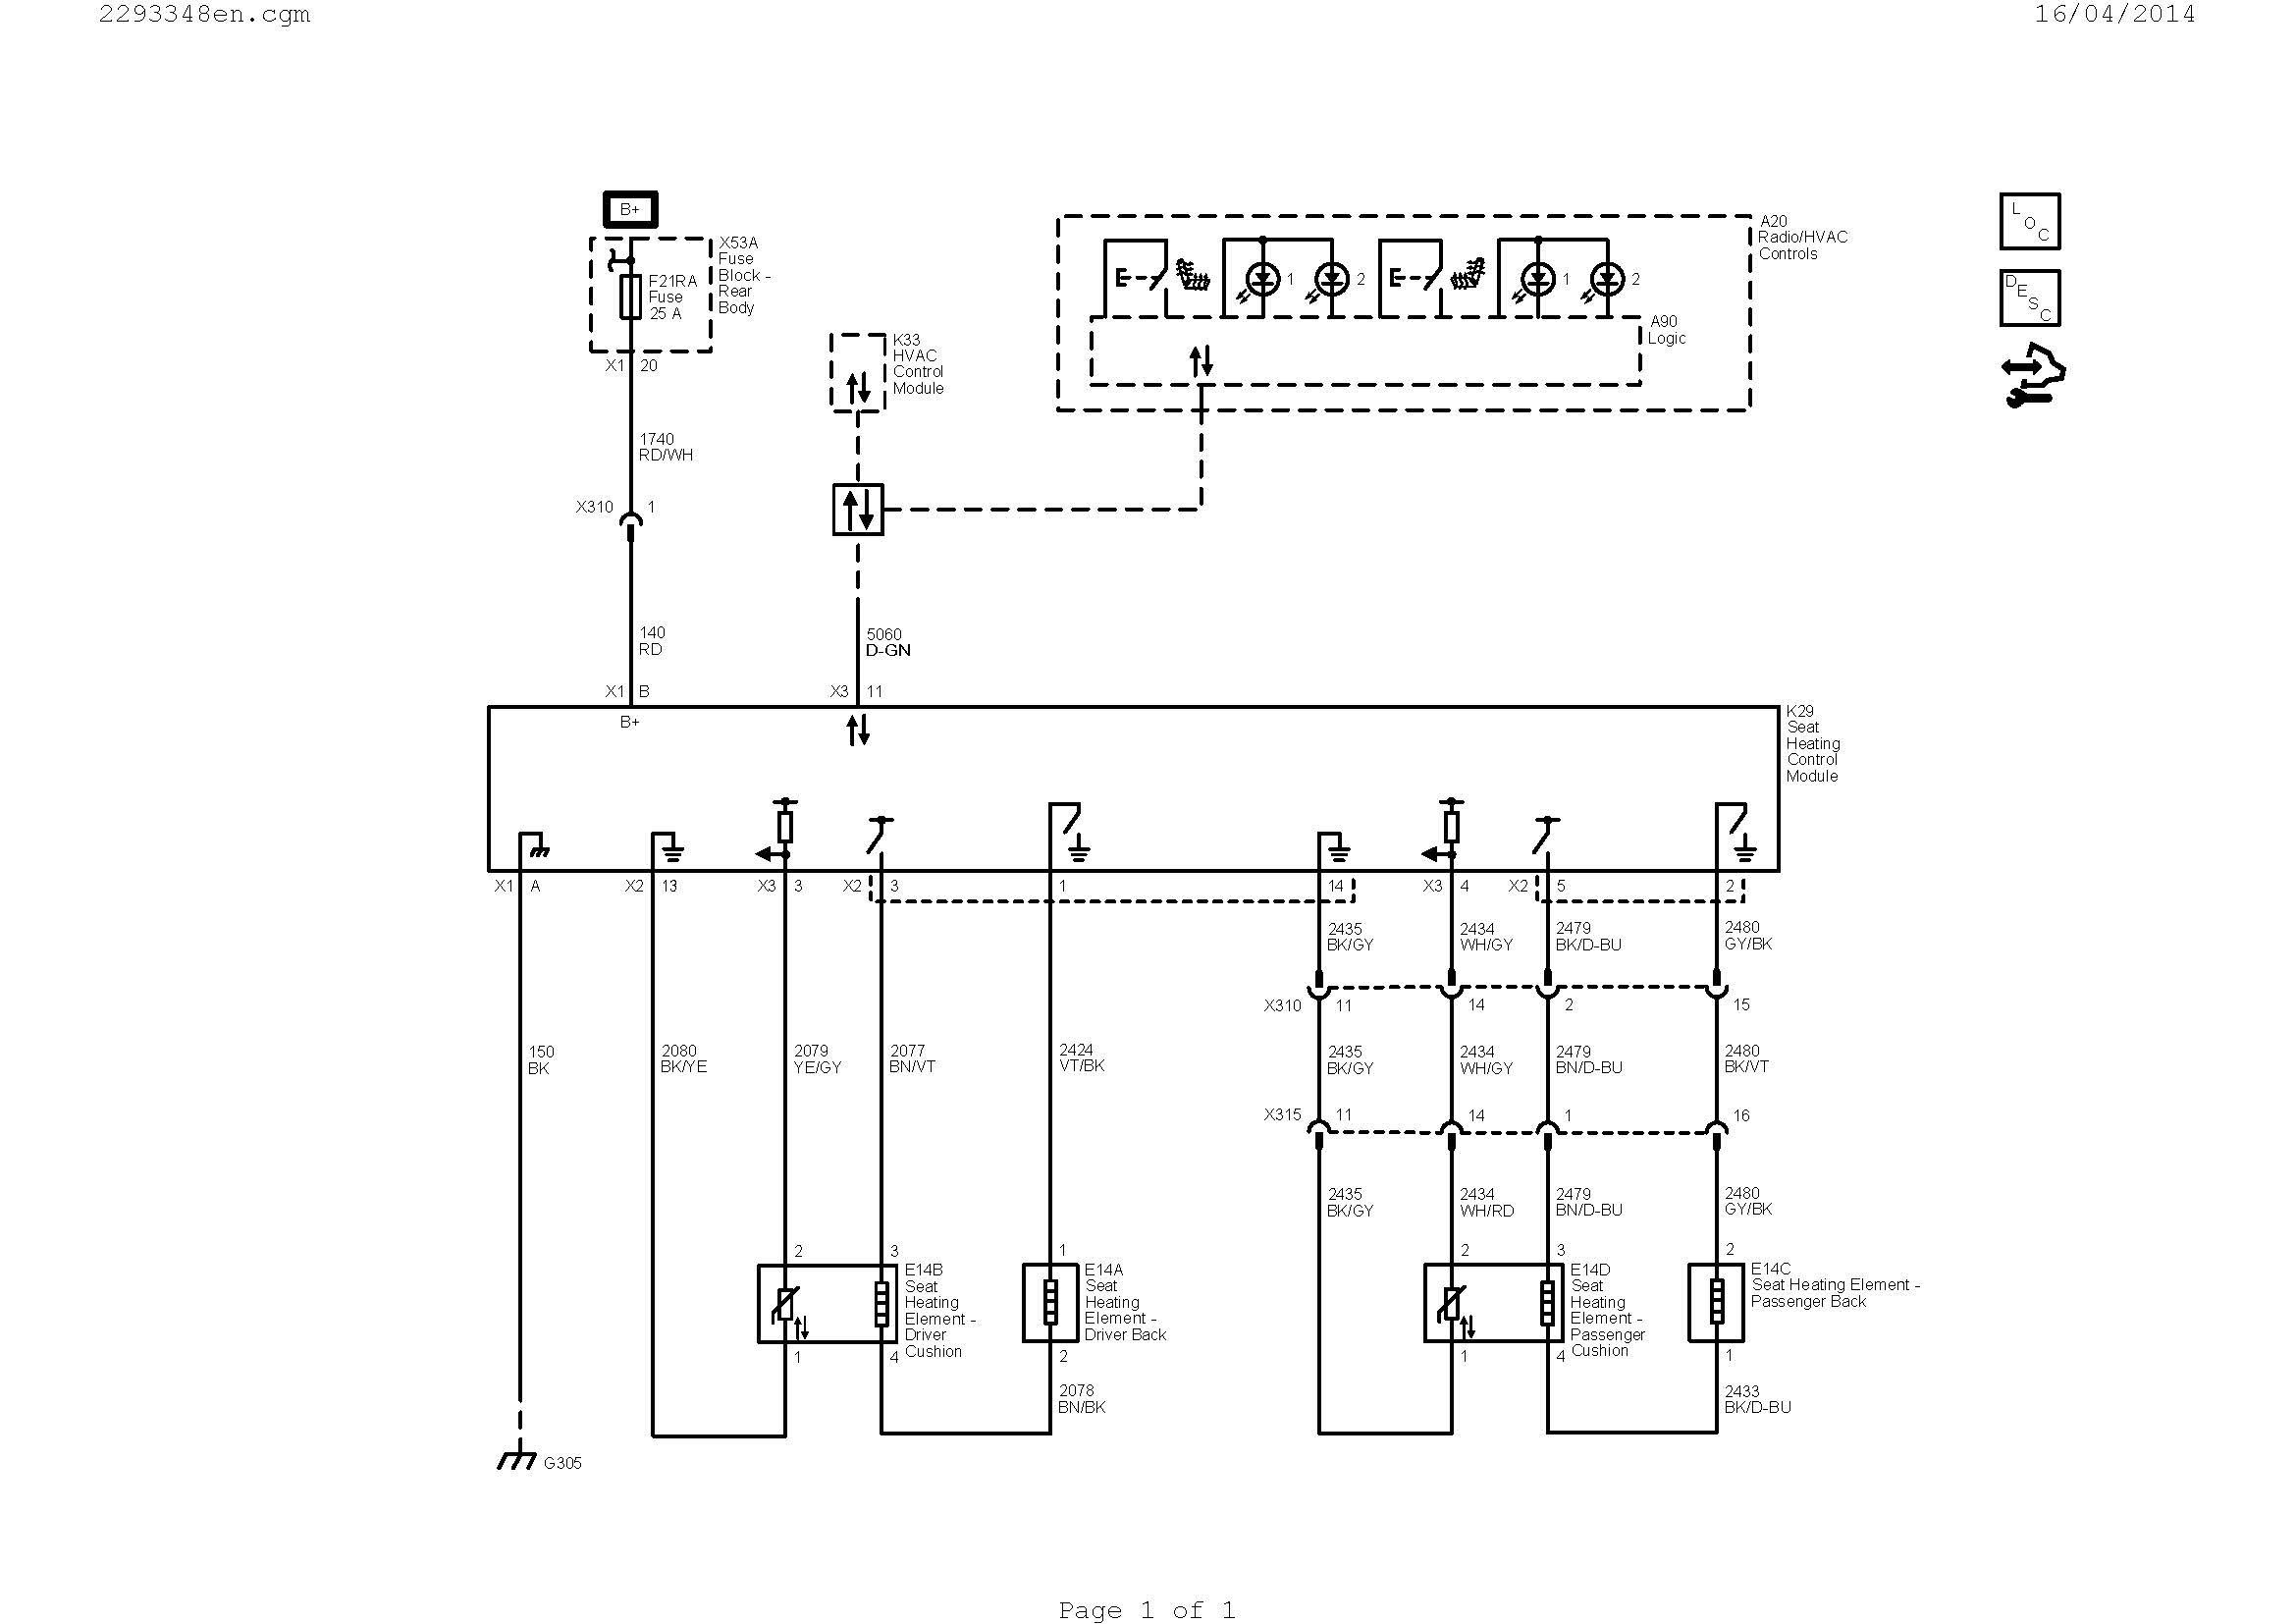 Diagram Wiring Diagram For A E100 Razor Scooter Full Version Hd Quality Razor Scooter Snadiagram Abeteecologico It